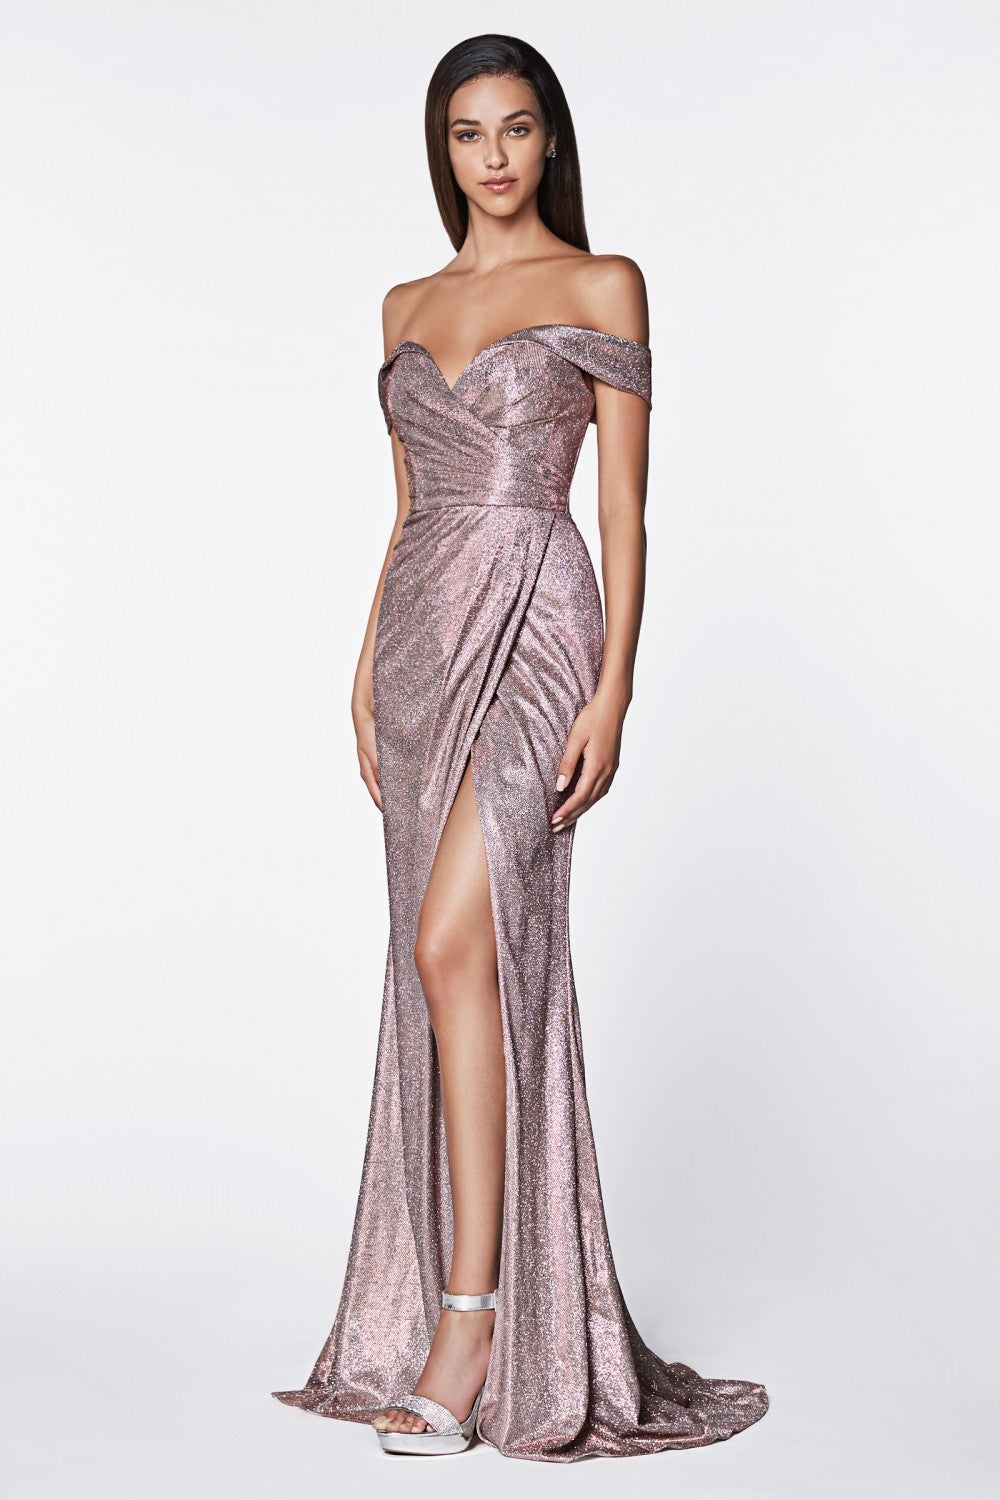 Off The Shoulder Metallic Gown With Sweetheart Neckline And Leg Slit